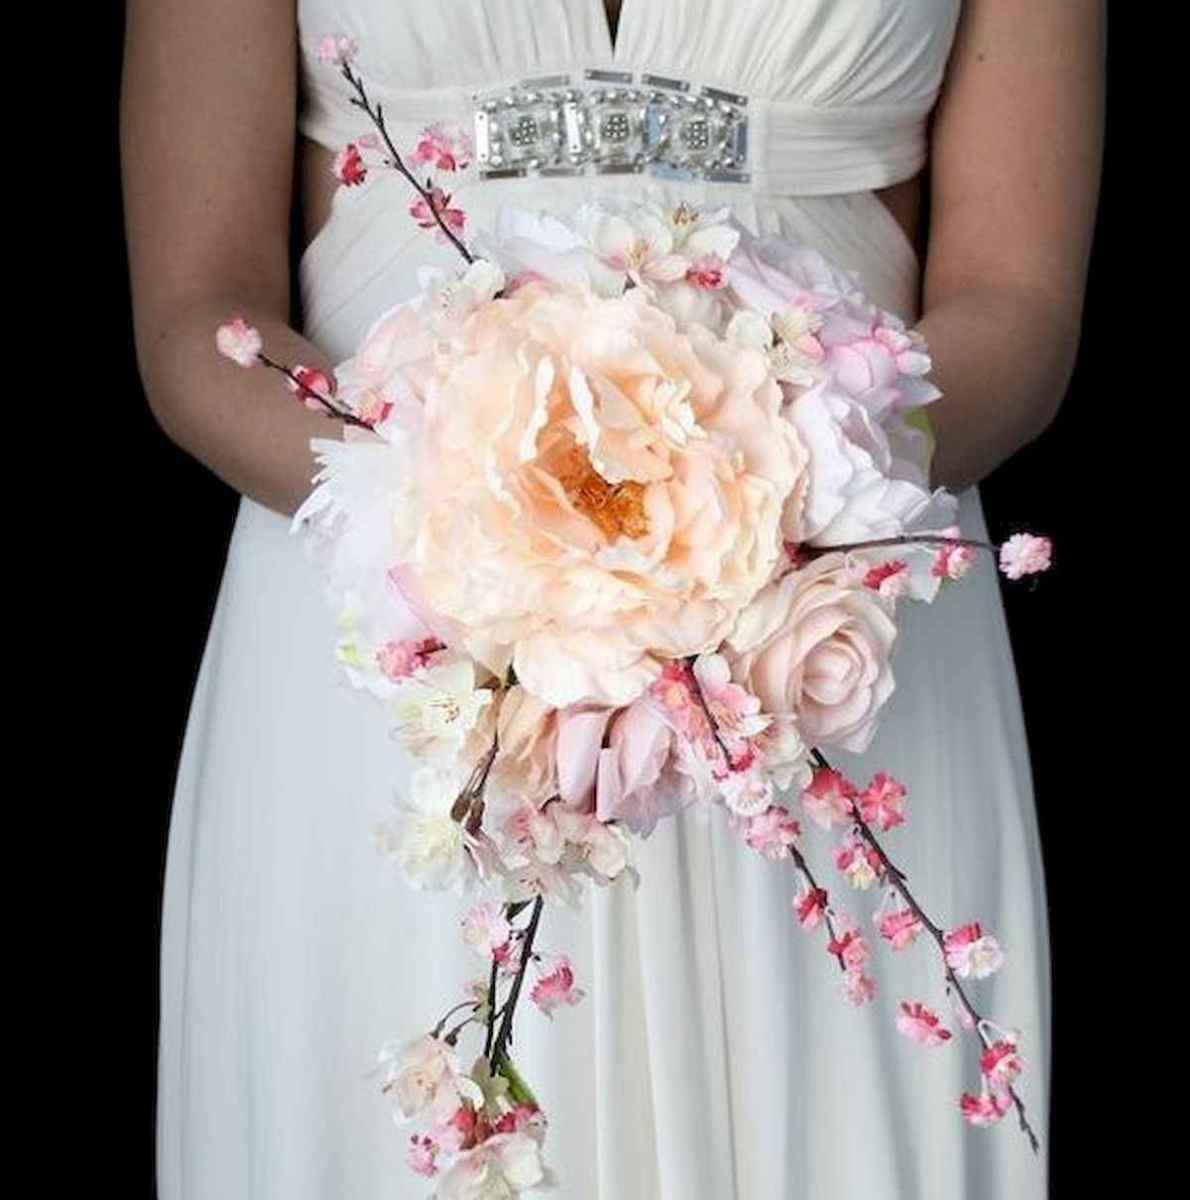 50 Beautiful Spring Bridesmaid Bouquets for Wedding Ideas (38)